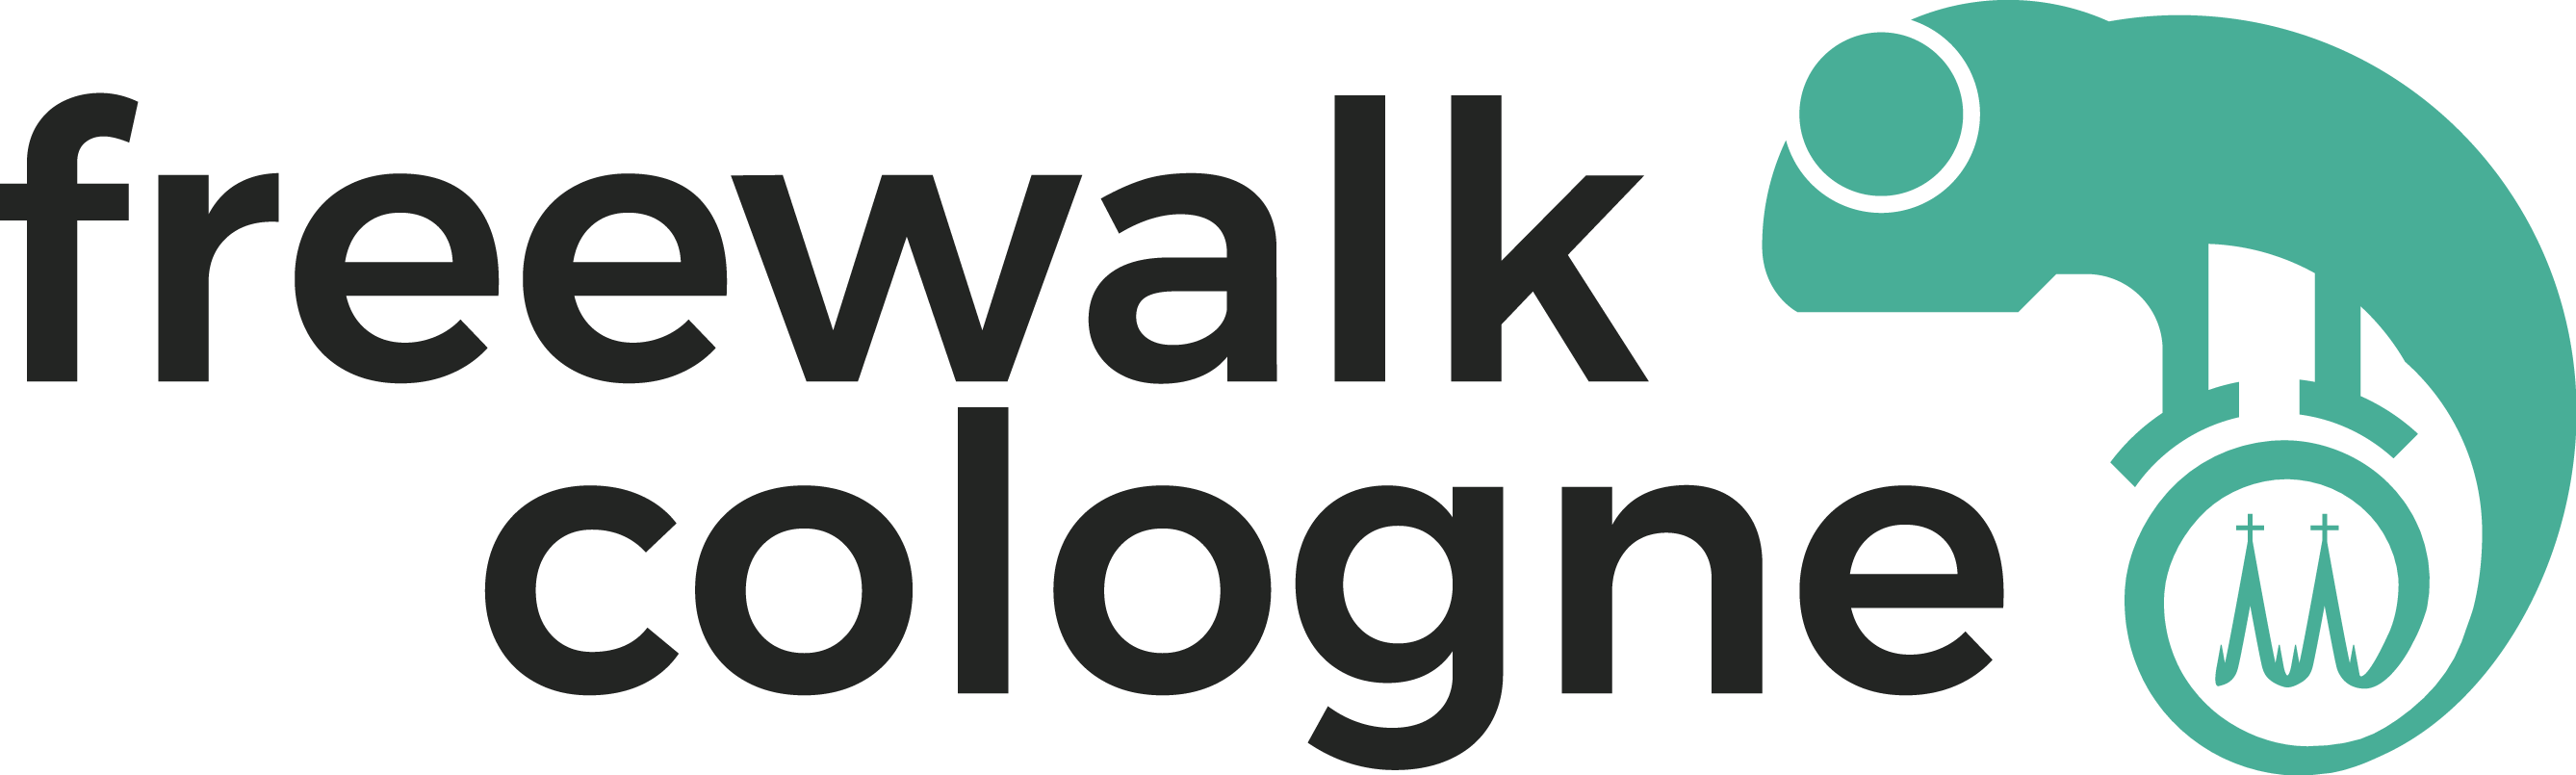 Freewalk Cologne